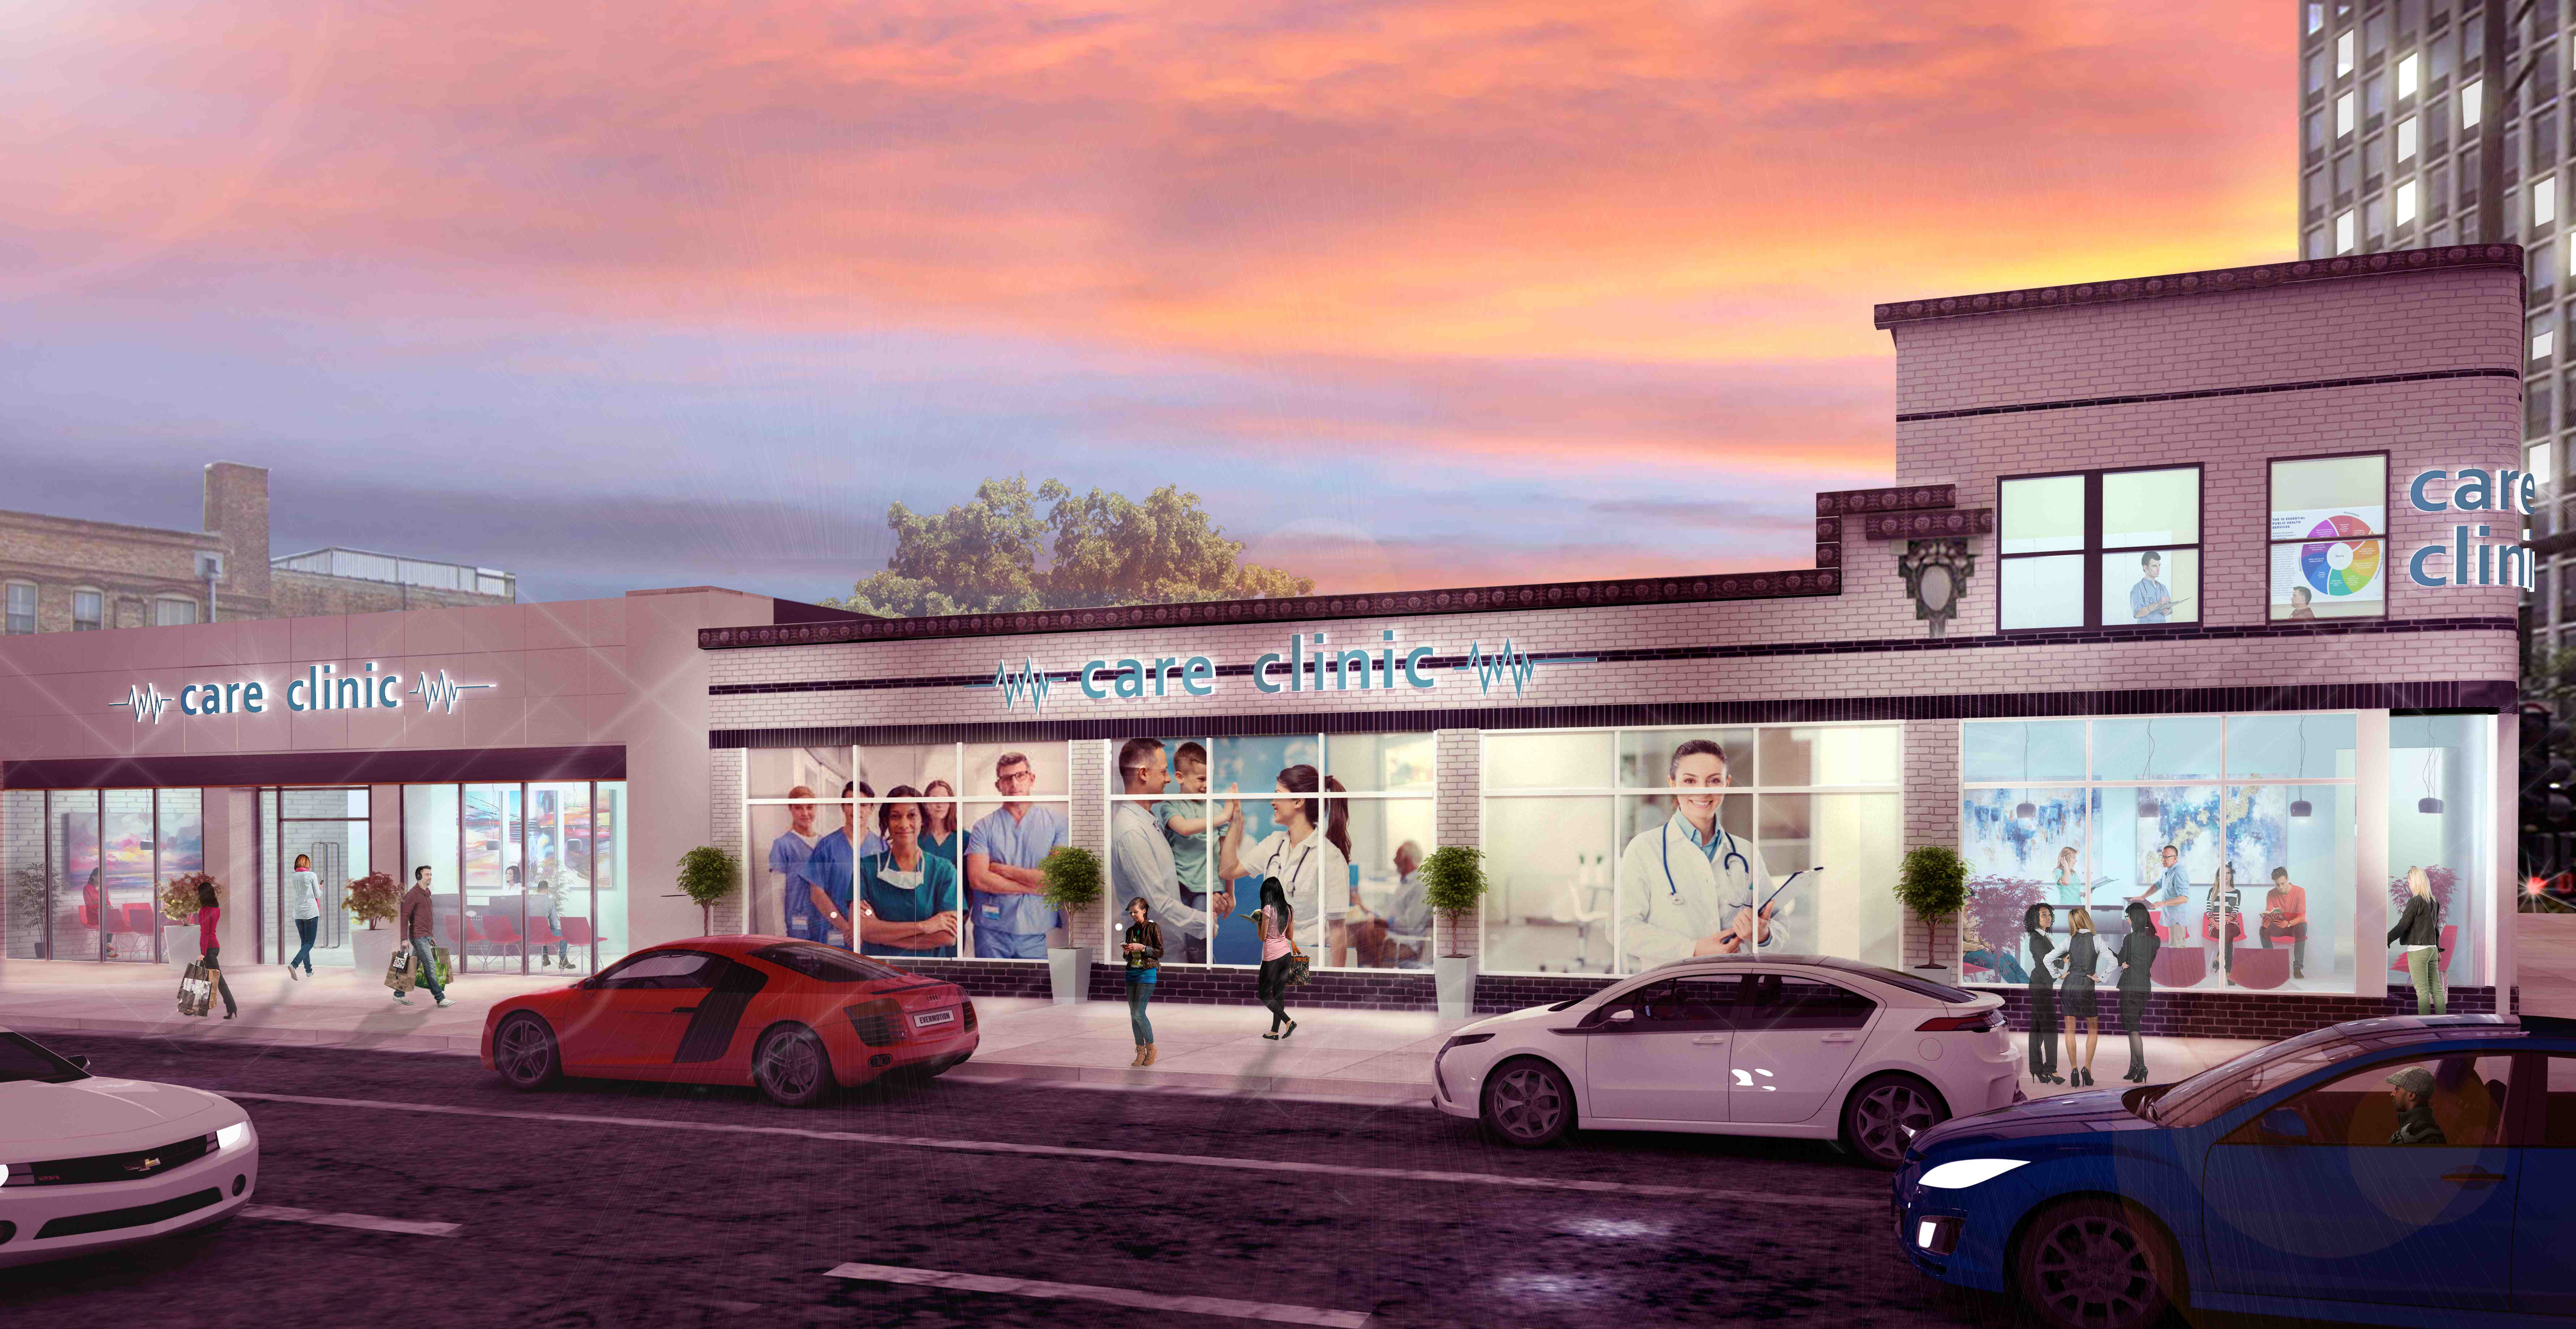 Rendering of what the space could look like as a care clinic